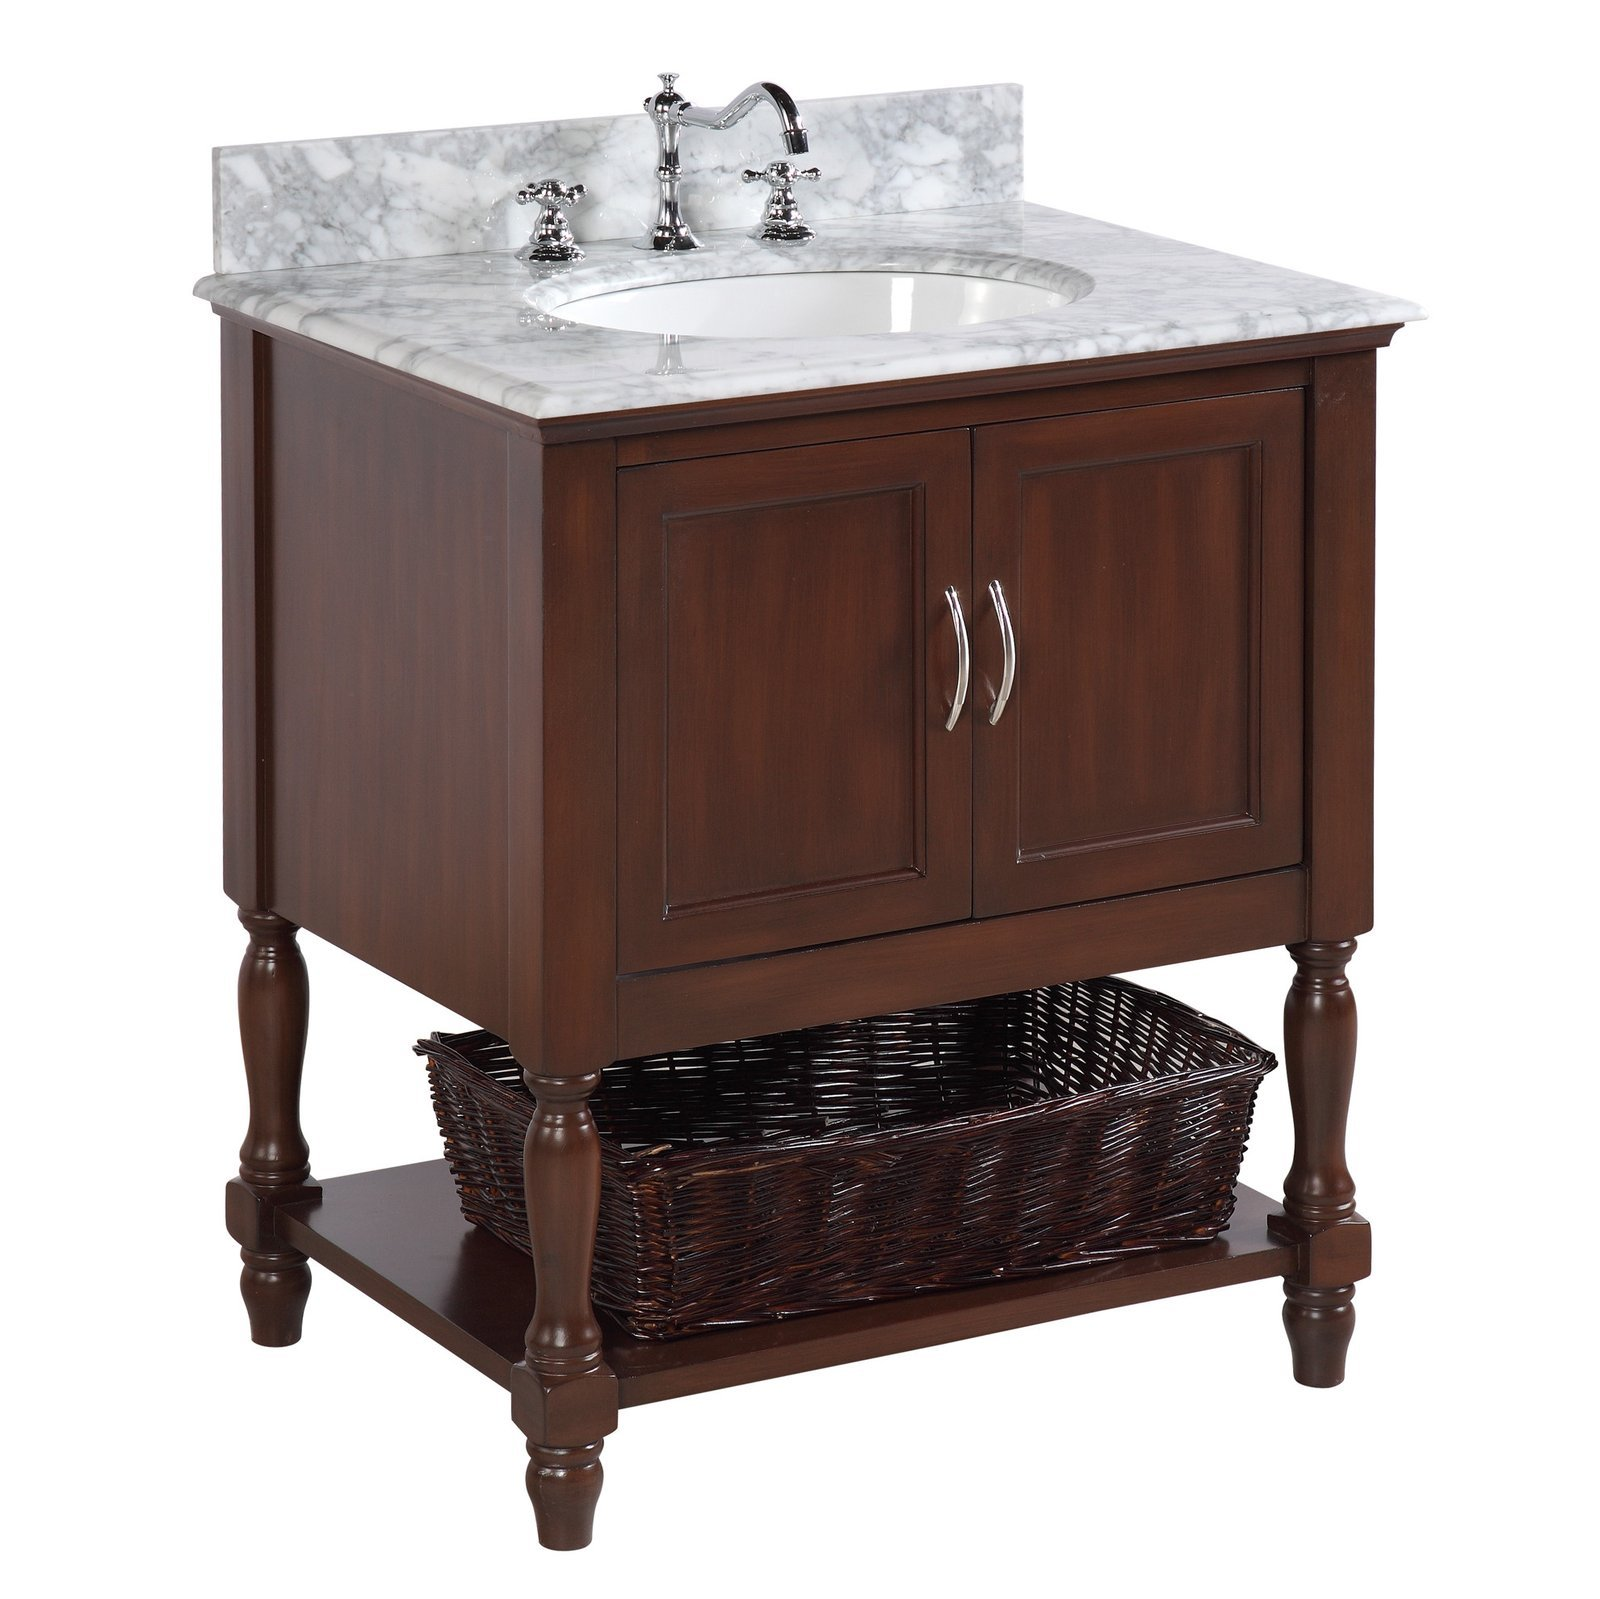 "Beverly 30"" Bathroom Vanity with Chocolate Cabinet ..."